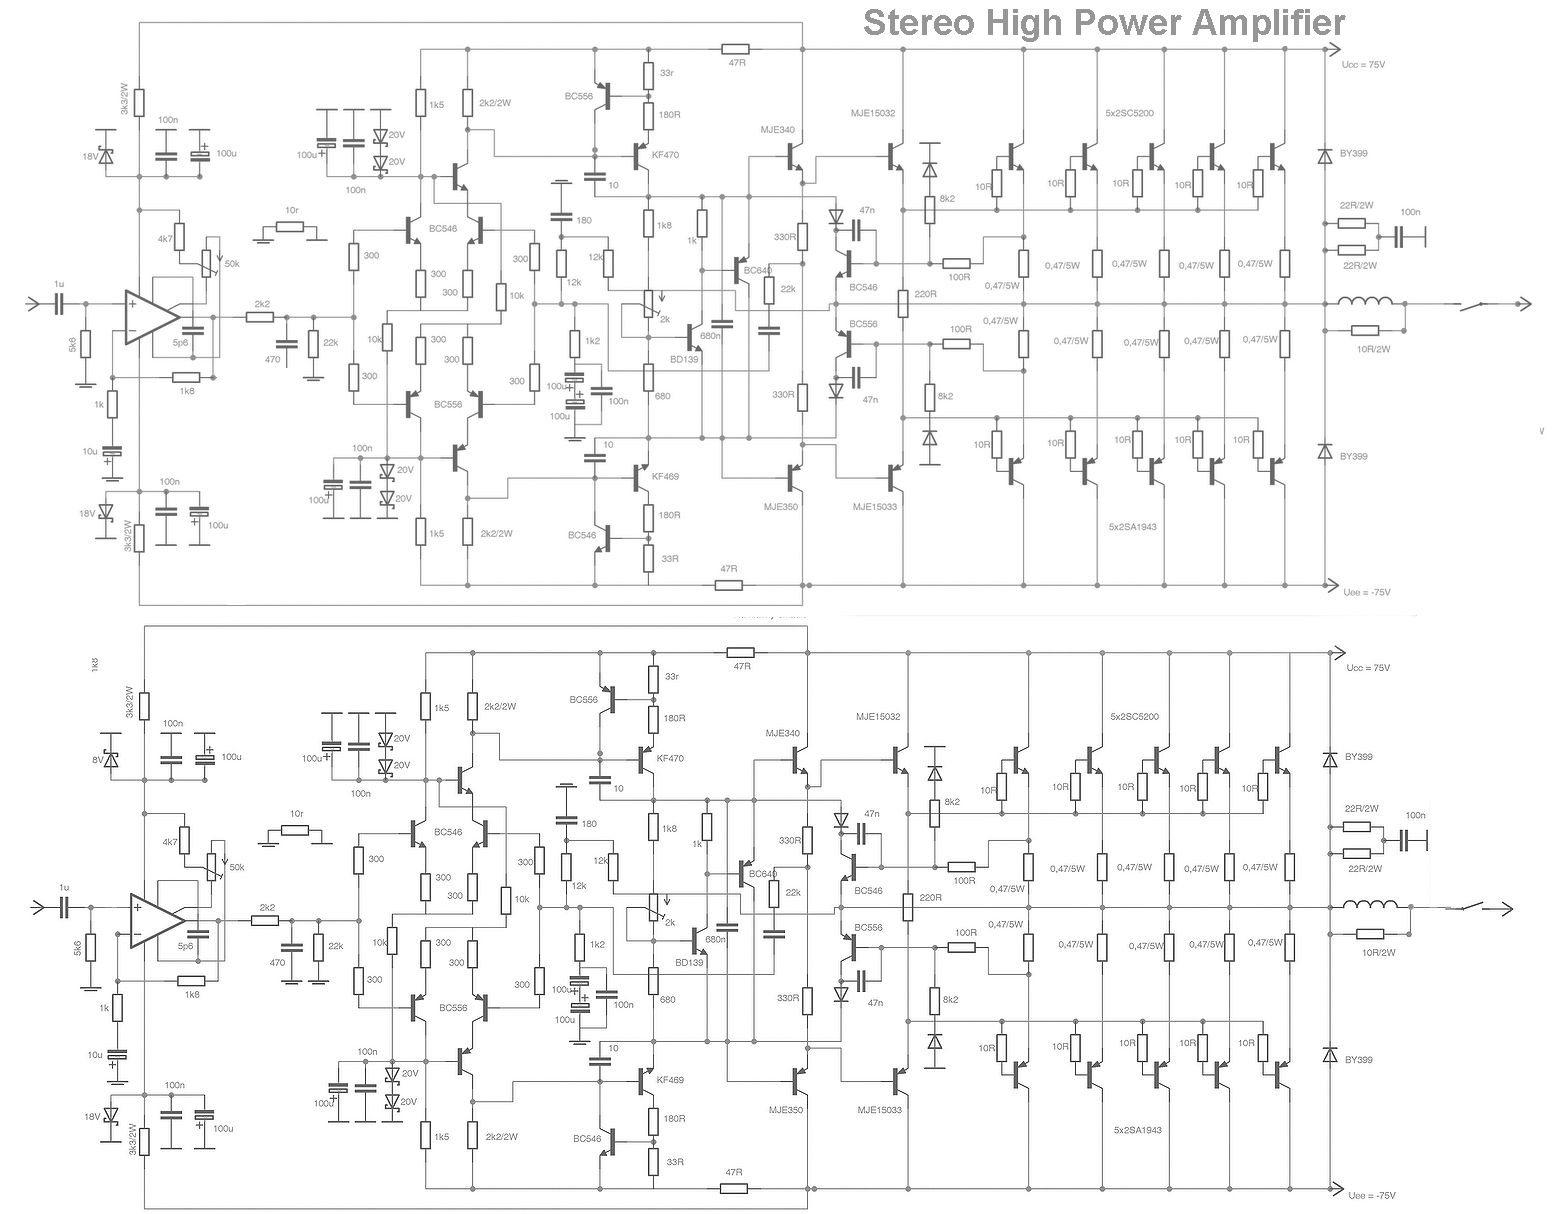 Stk Power Amplifier Circuits 300w Auto Electrical Wiring Diagram Stk457 Circuit Related With